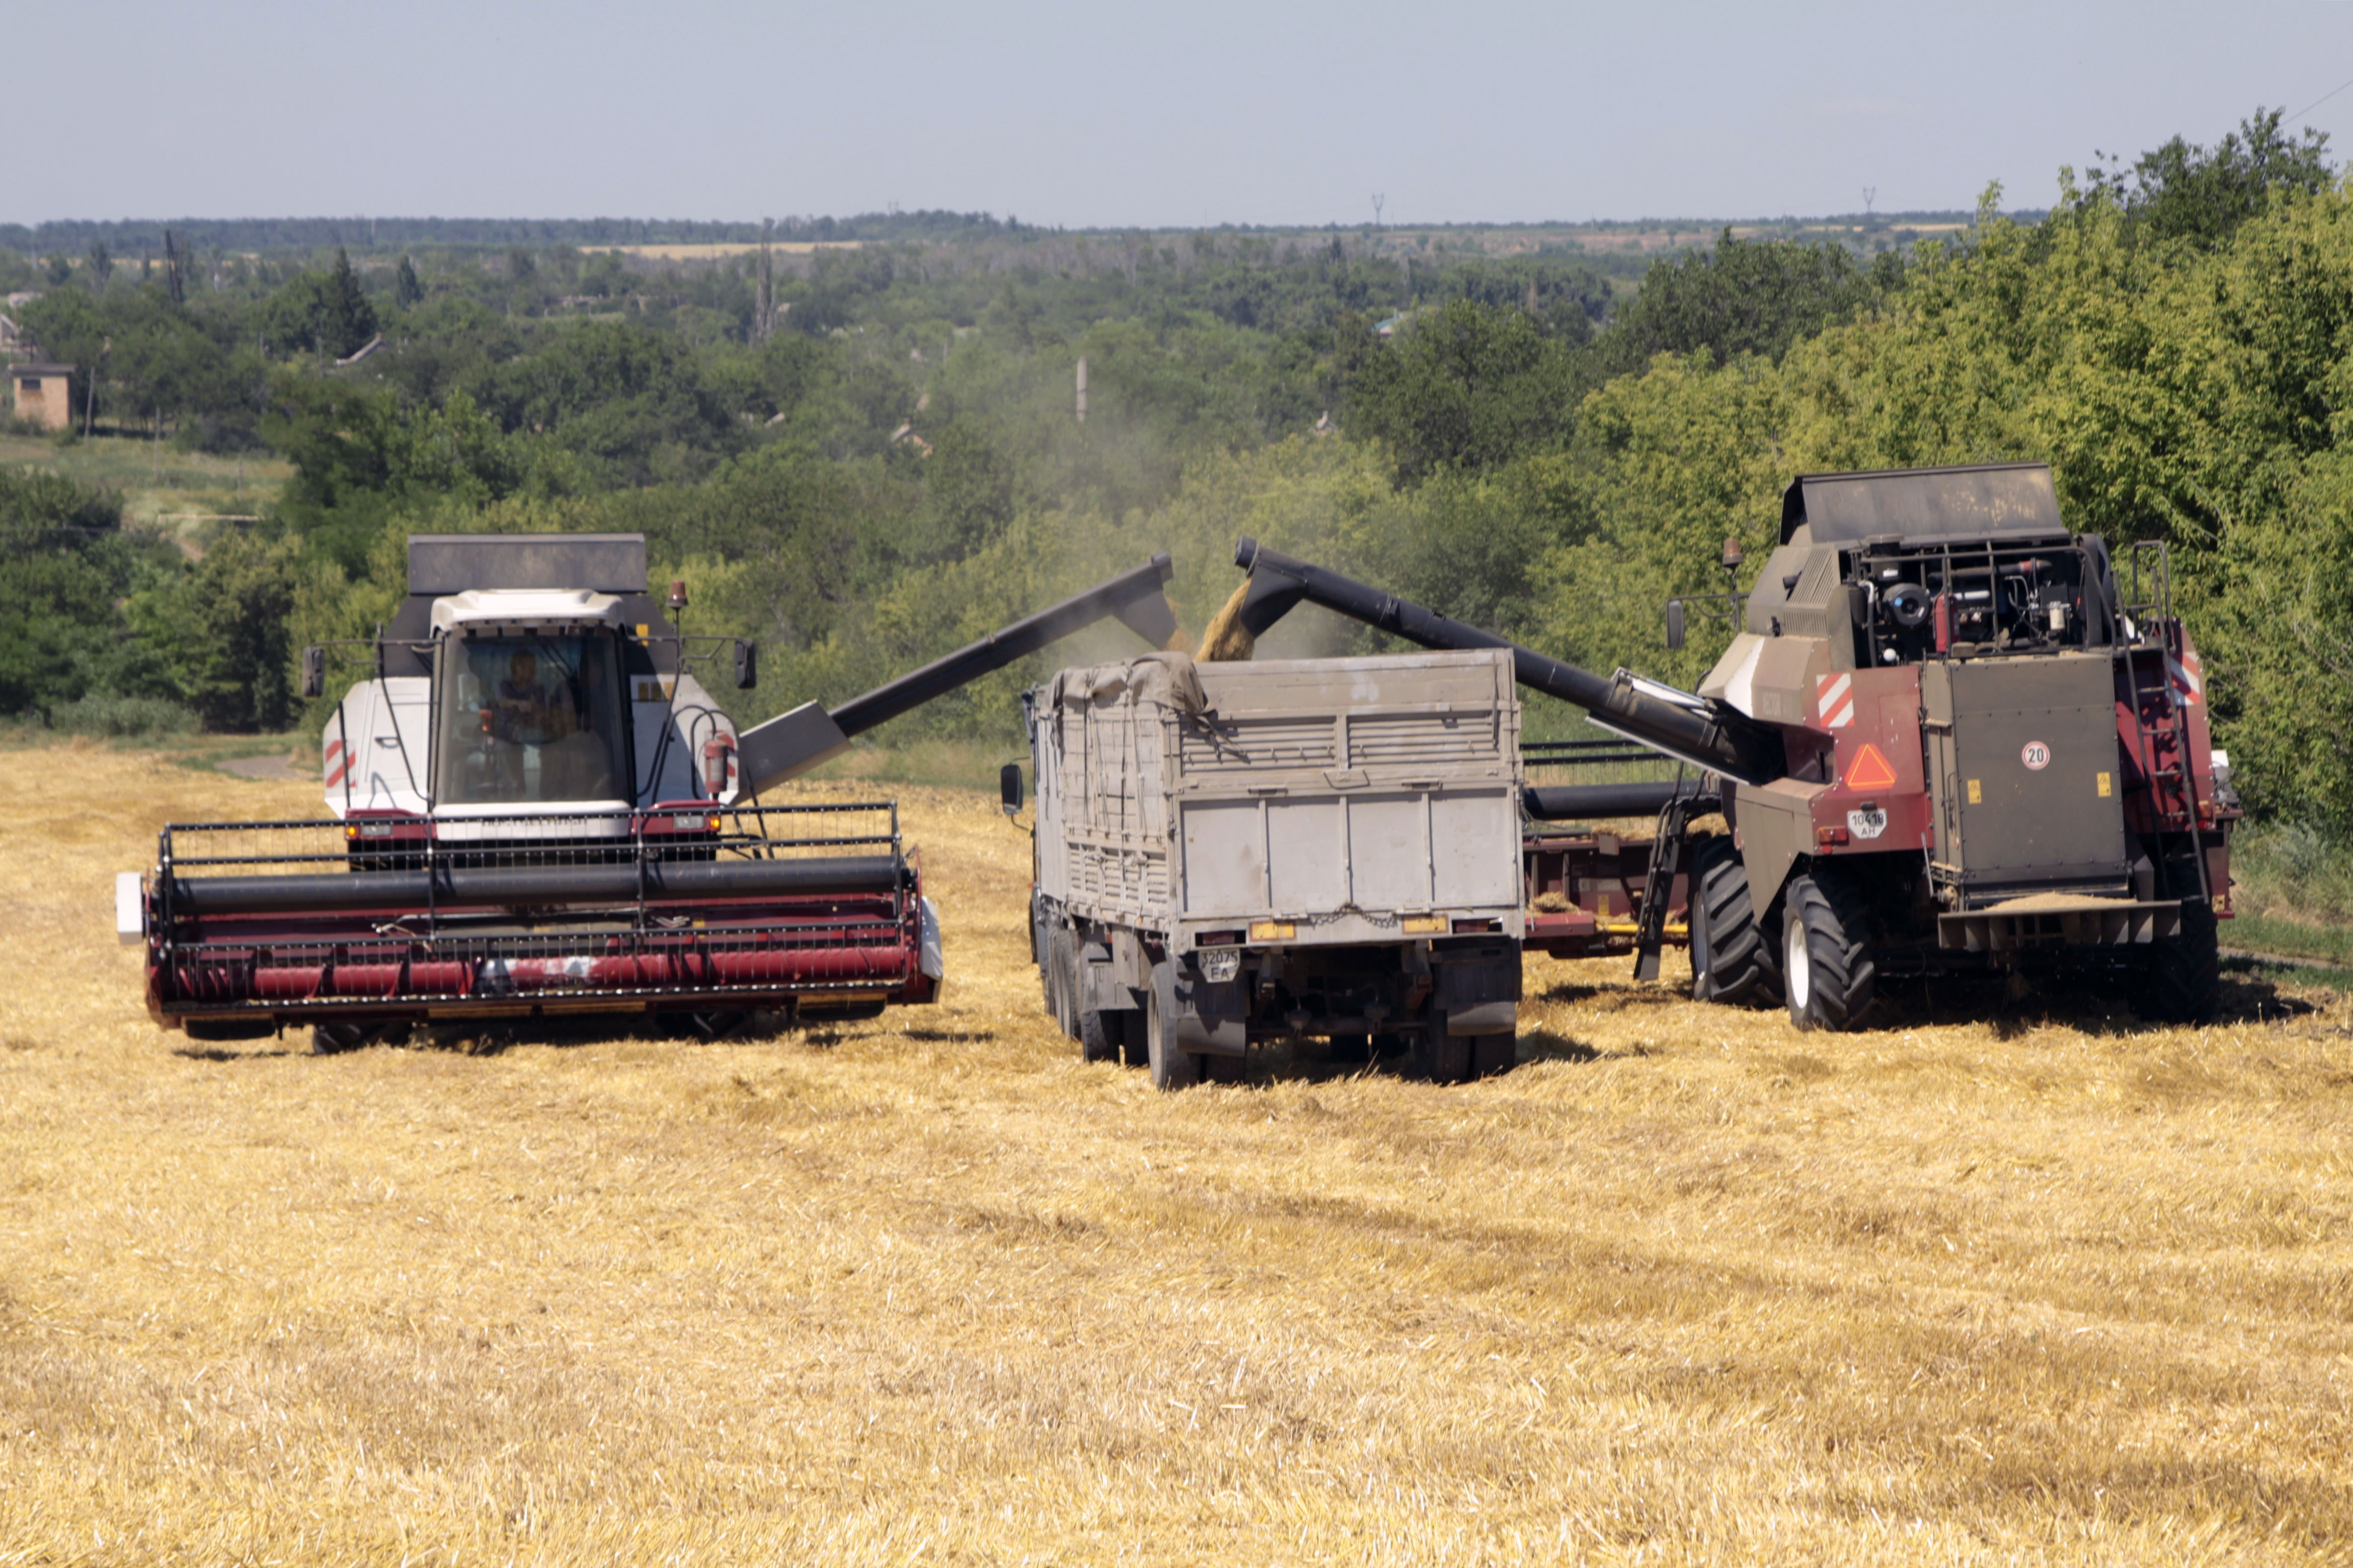 Russia Dominates Wheat Market as Soggy Fields Push Out France